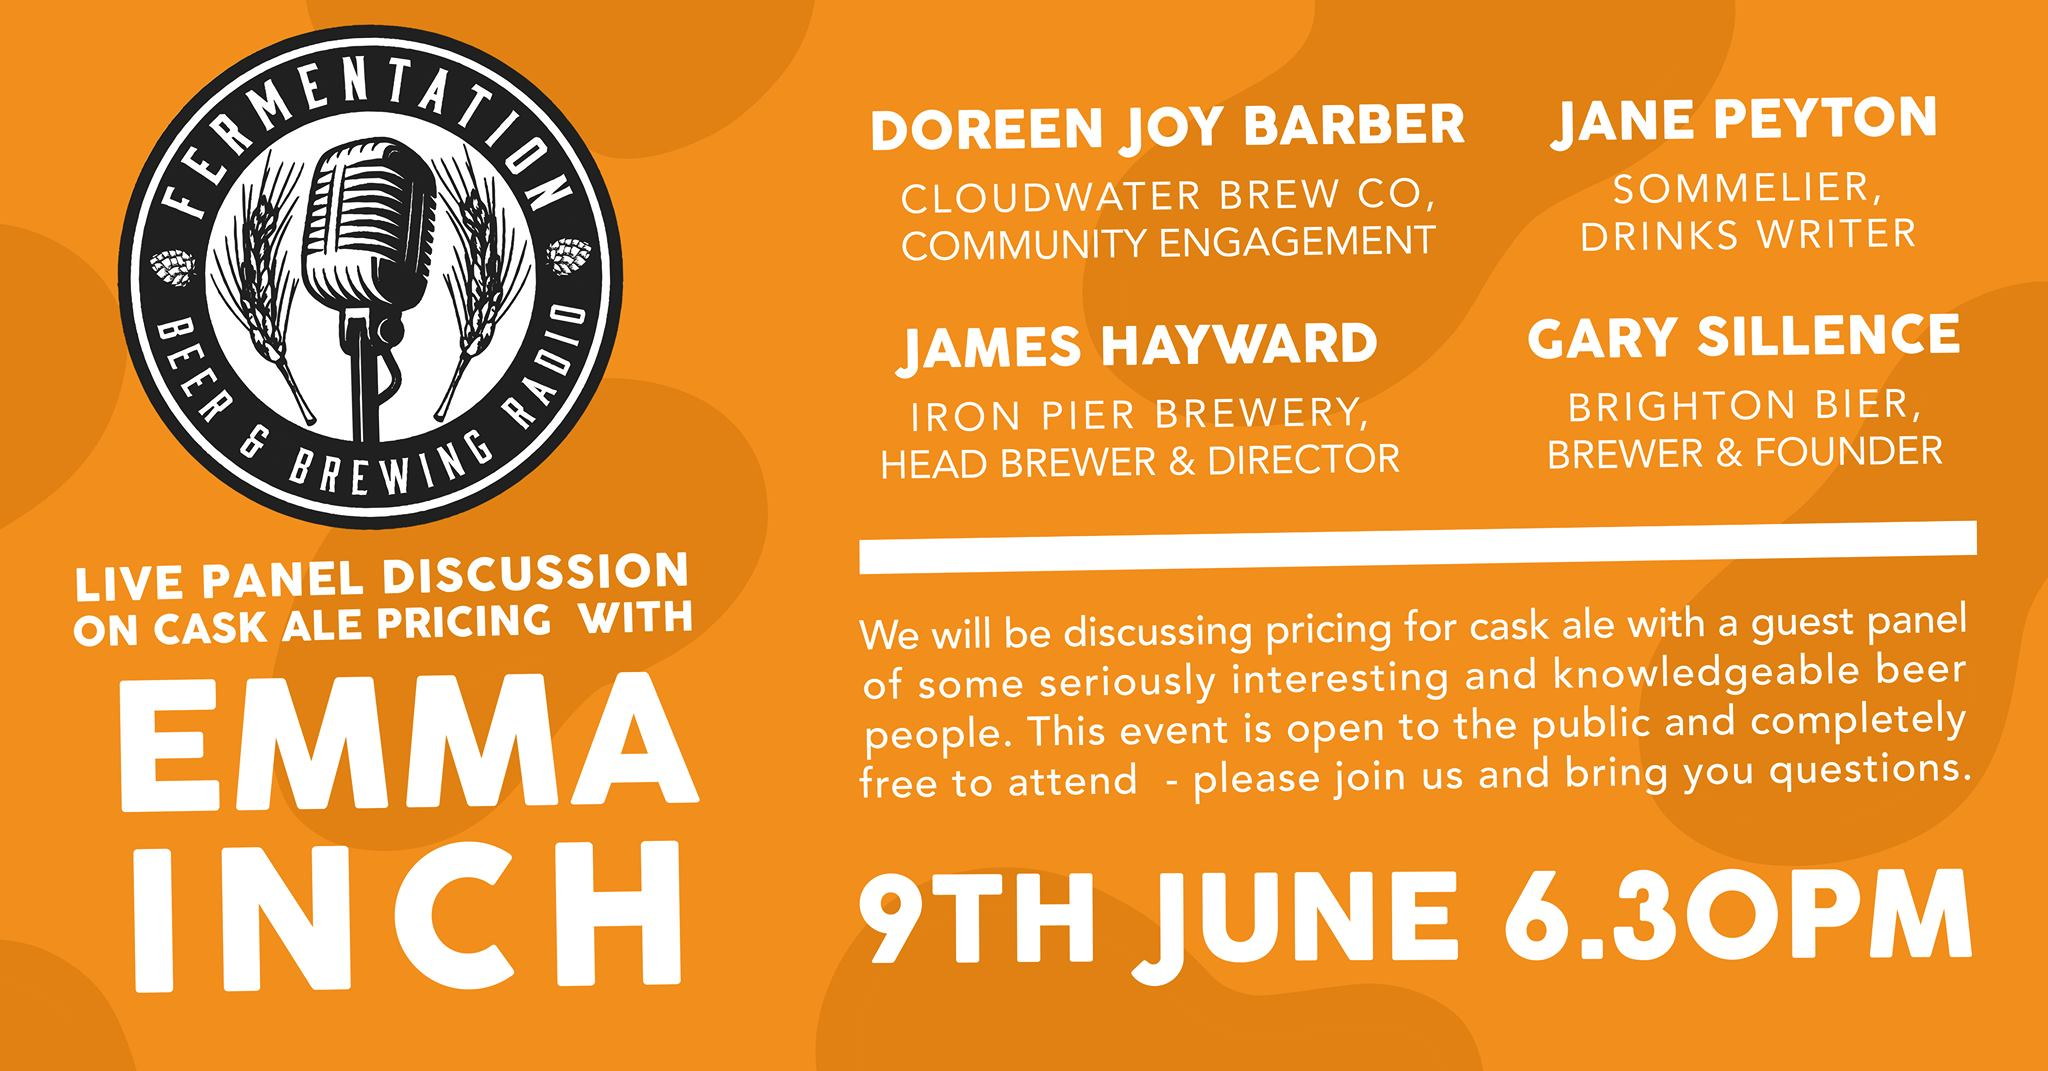 live-panel-discussion-holler-brewery-cask-ale-emma-inch-beer-writer.jpg